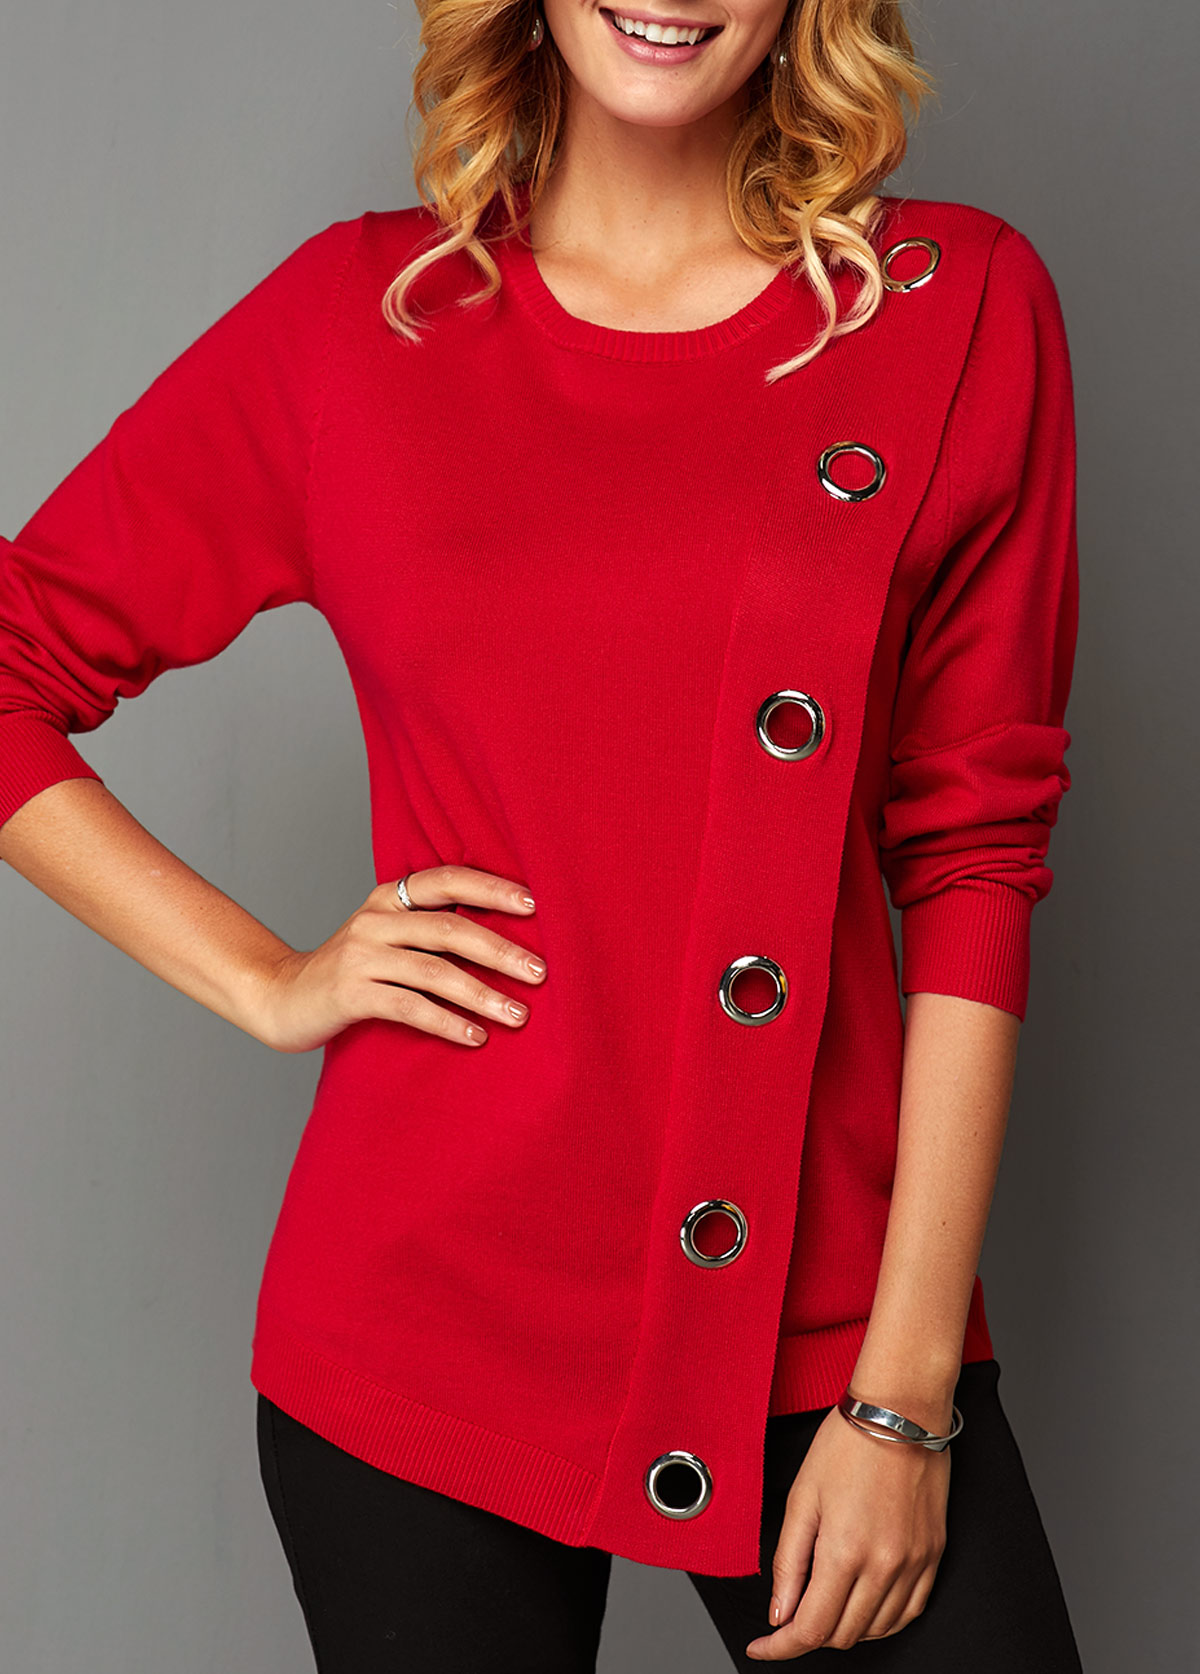 Eyelet Detail Asymmetric Hem Long Sleeve Sweater